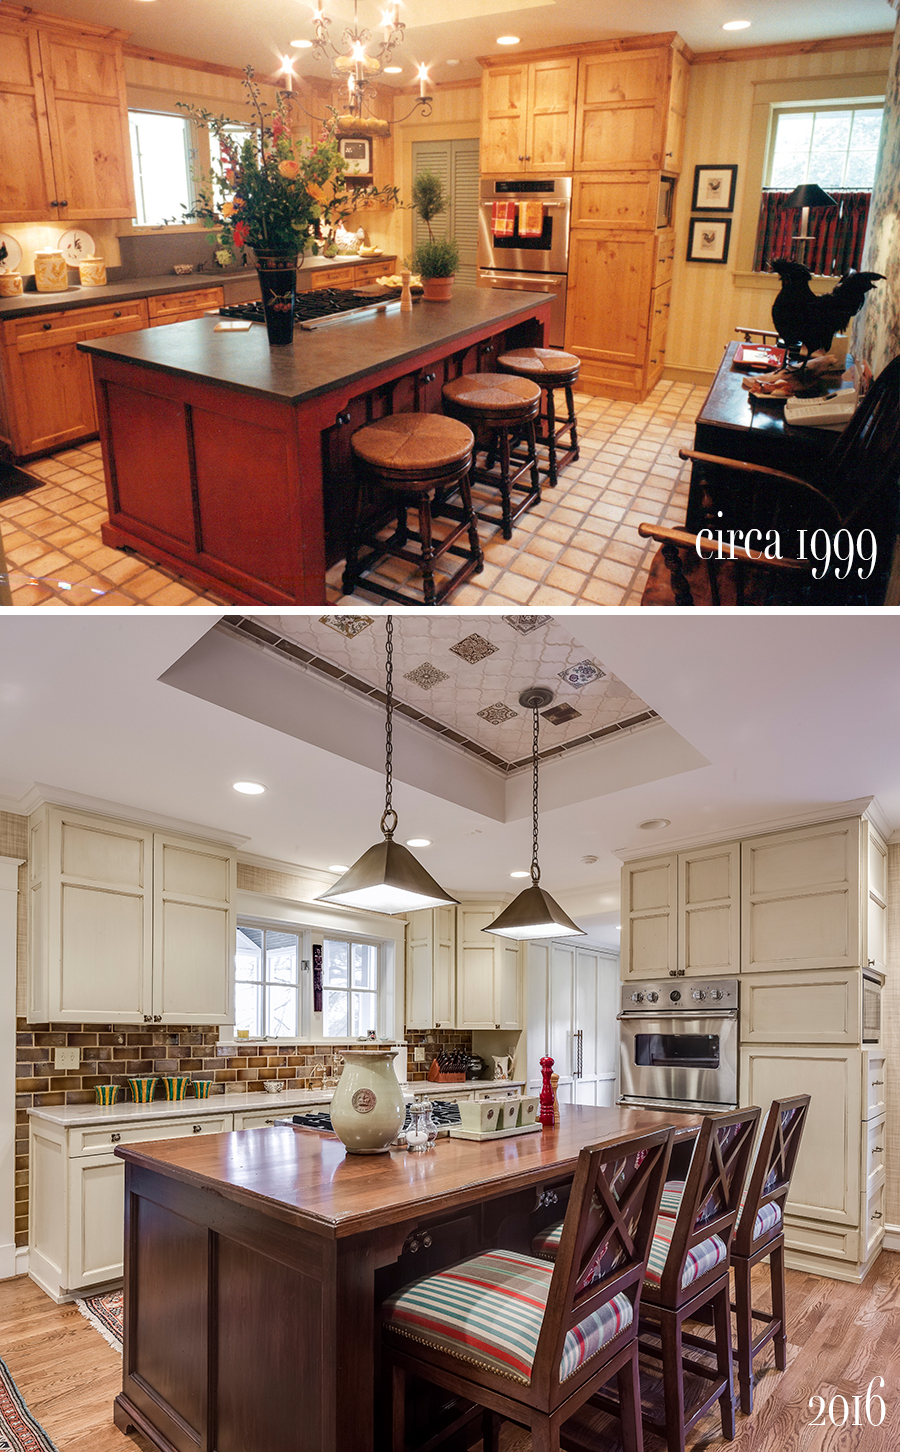 kitchen before and after both remodeled by scovell wolfe designed by nancy ruzicka